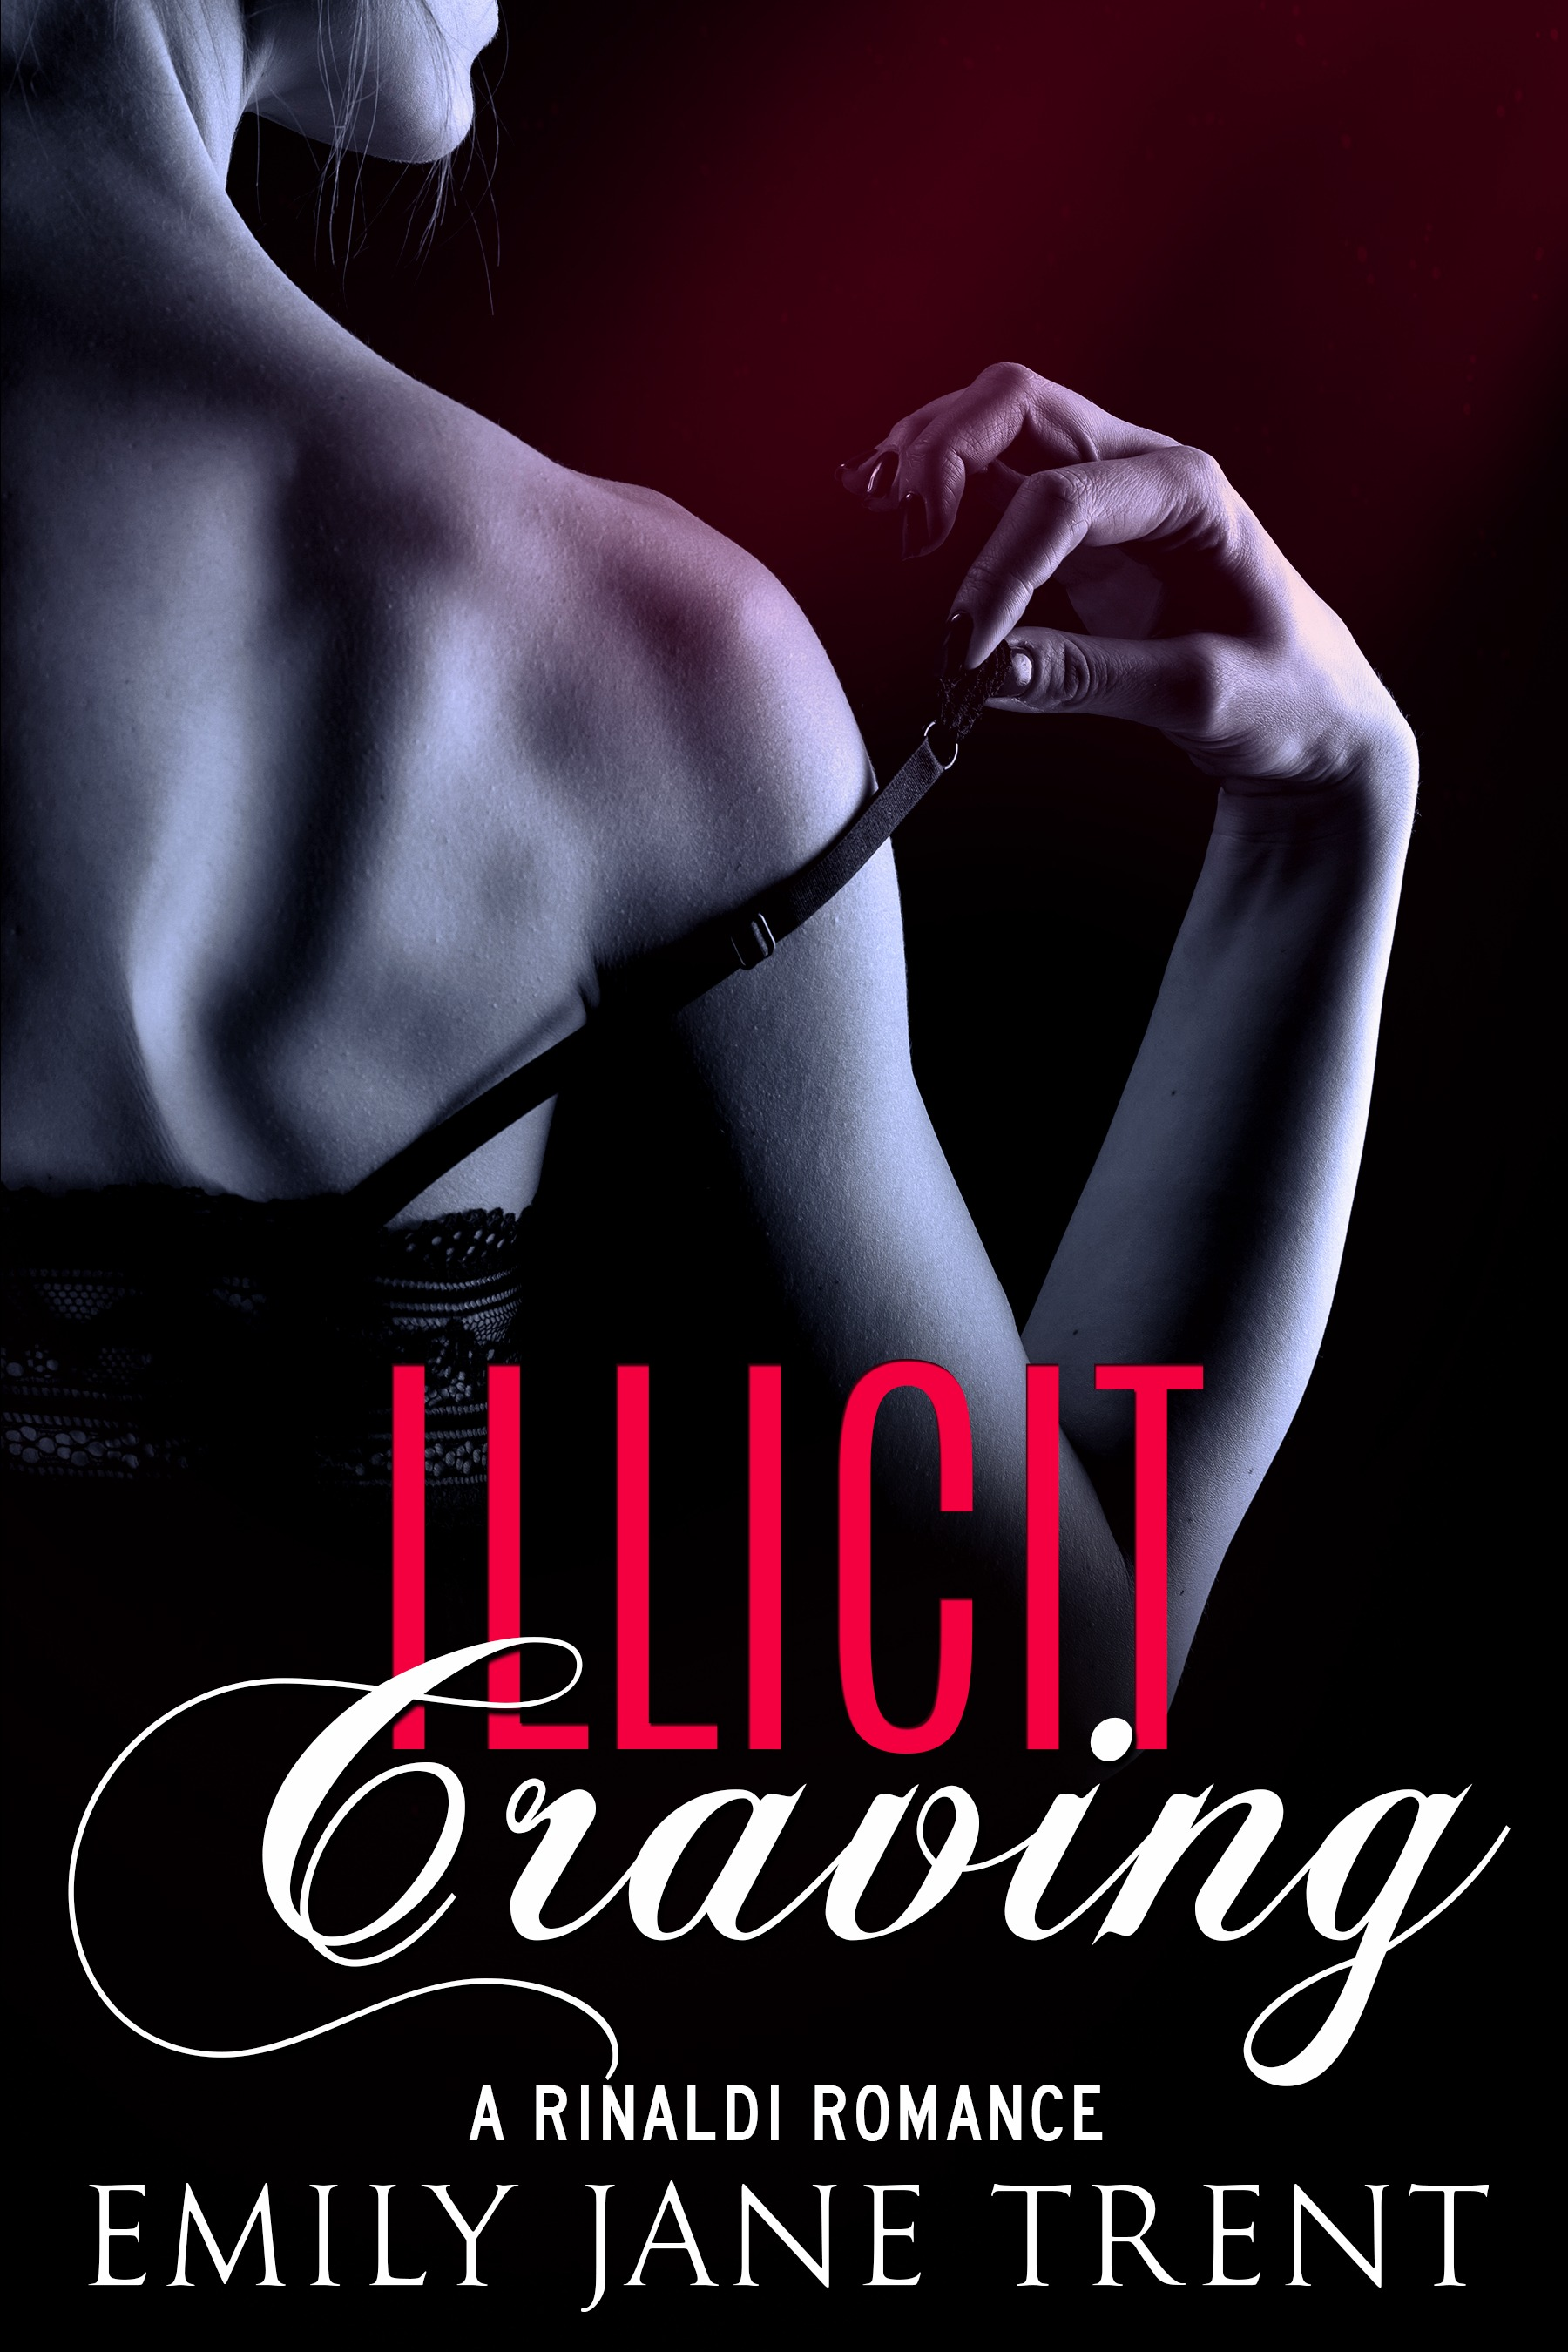 Illicit Craving (Bend To My Will #5) Emily Jane Trent